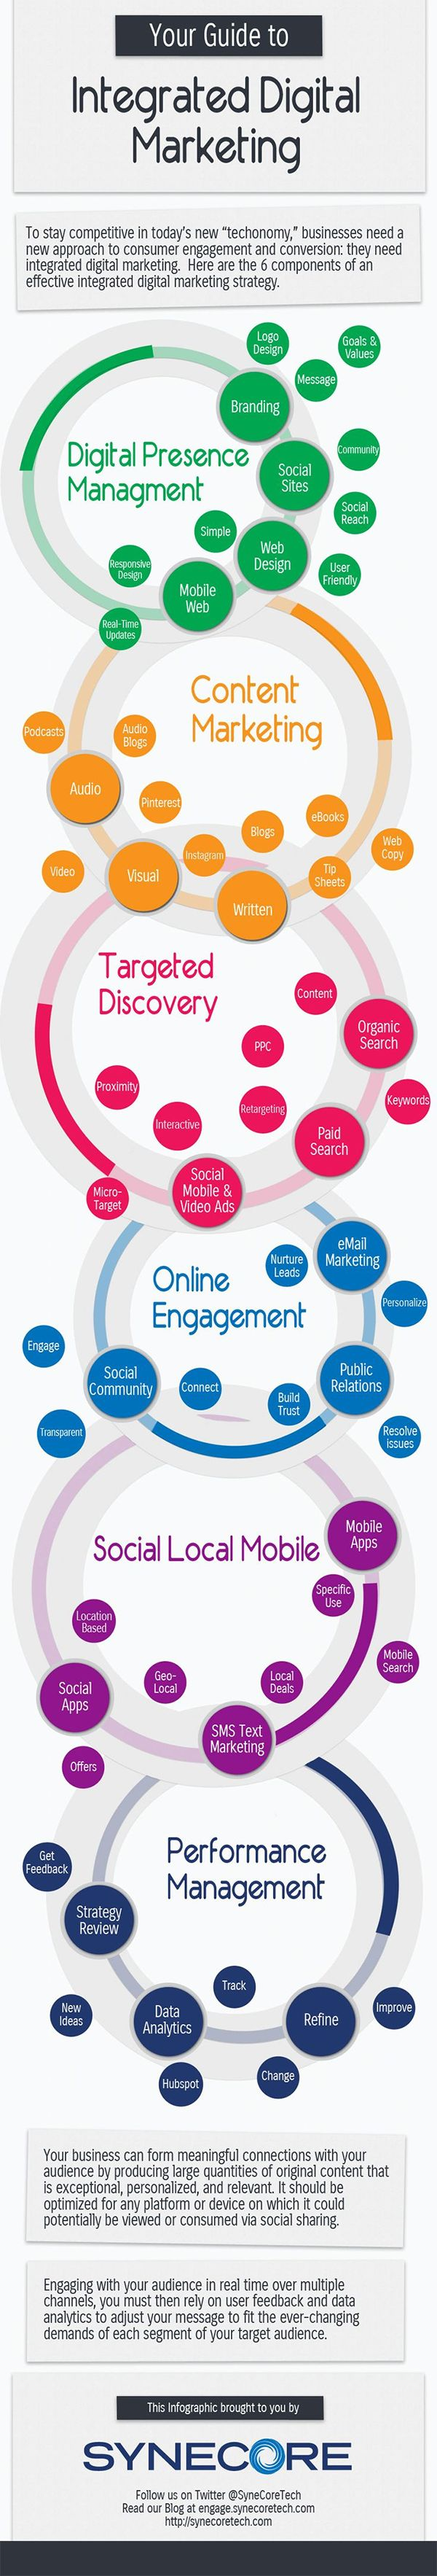 "DIGITAL MARKETING -         ""Your Guide to Integrated Digital Marketing""."